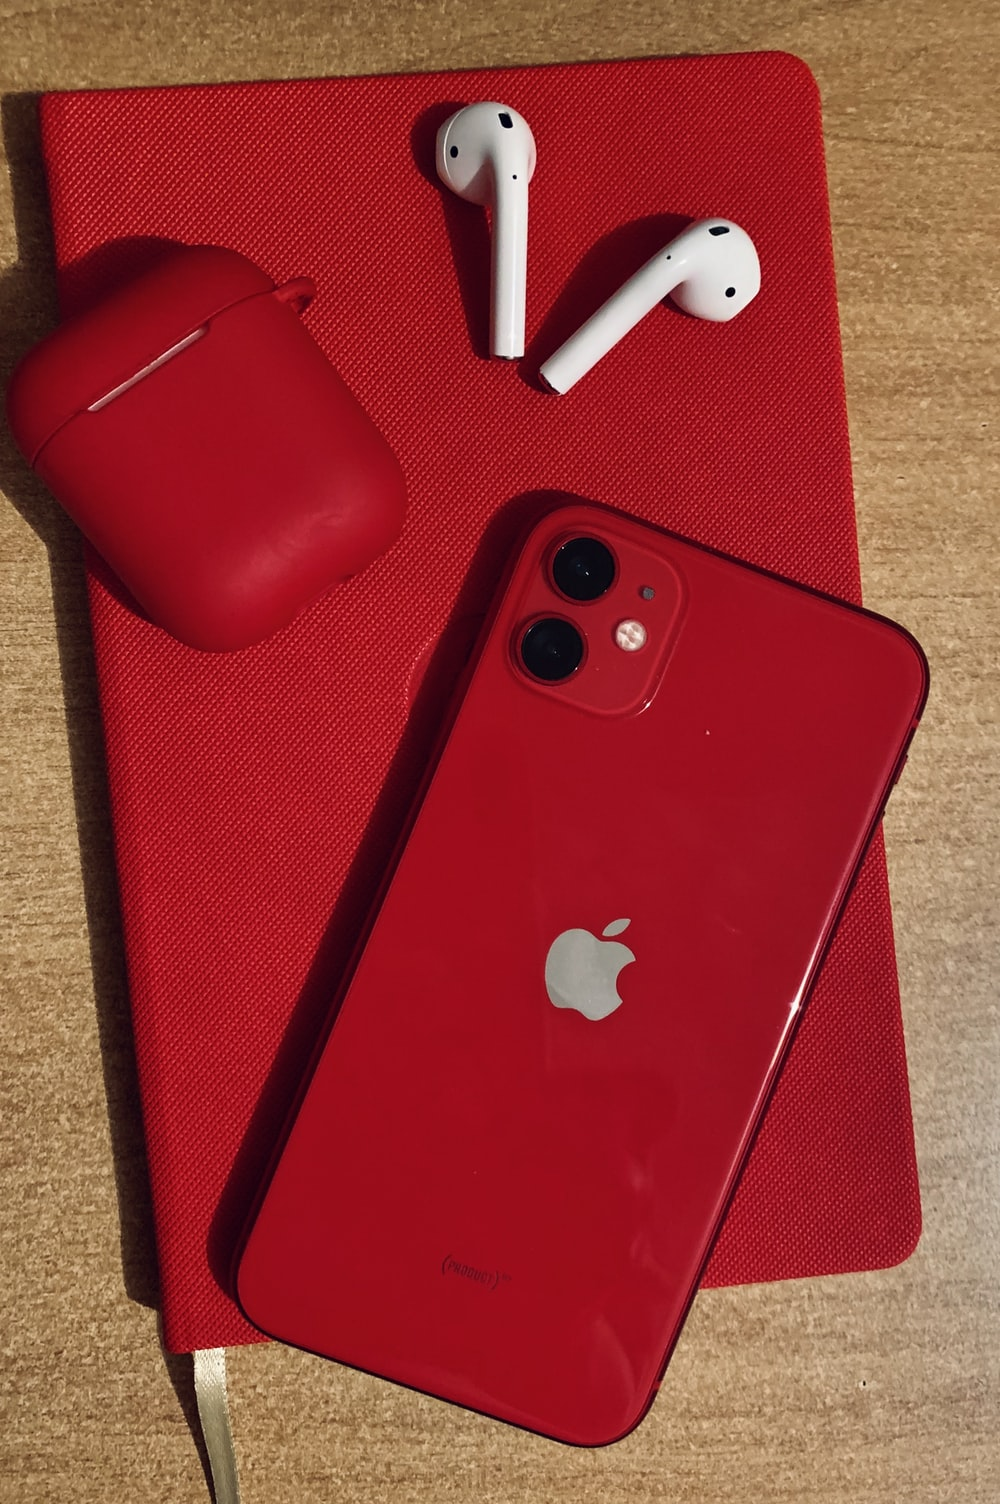 red iphone 7 plus on red textile